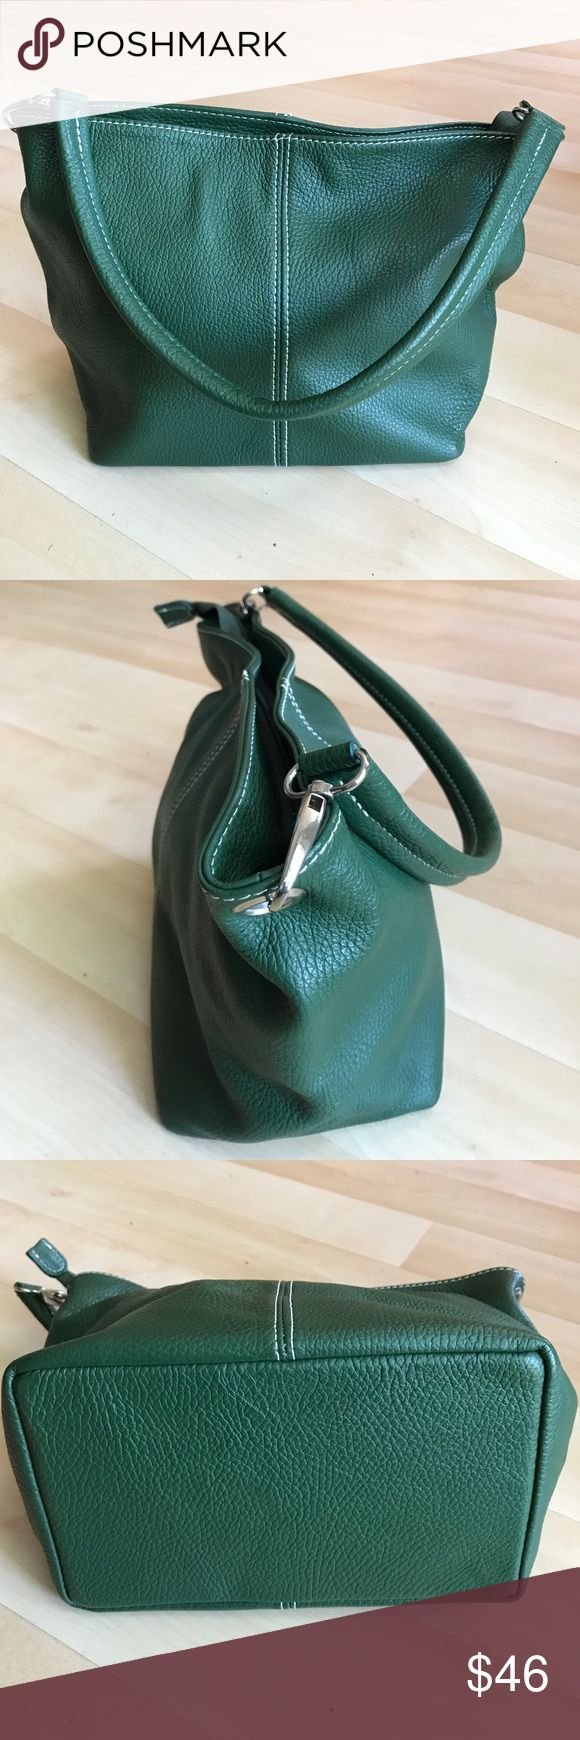 """New Green Italian pebbled leather purse New green Italian pebbled leather purse. Size 9""""(L),8""""(H),5""""(D). Shoulder handle is 18"""". Light and cute. Bags Shoulder Bags"""